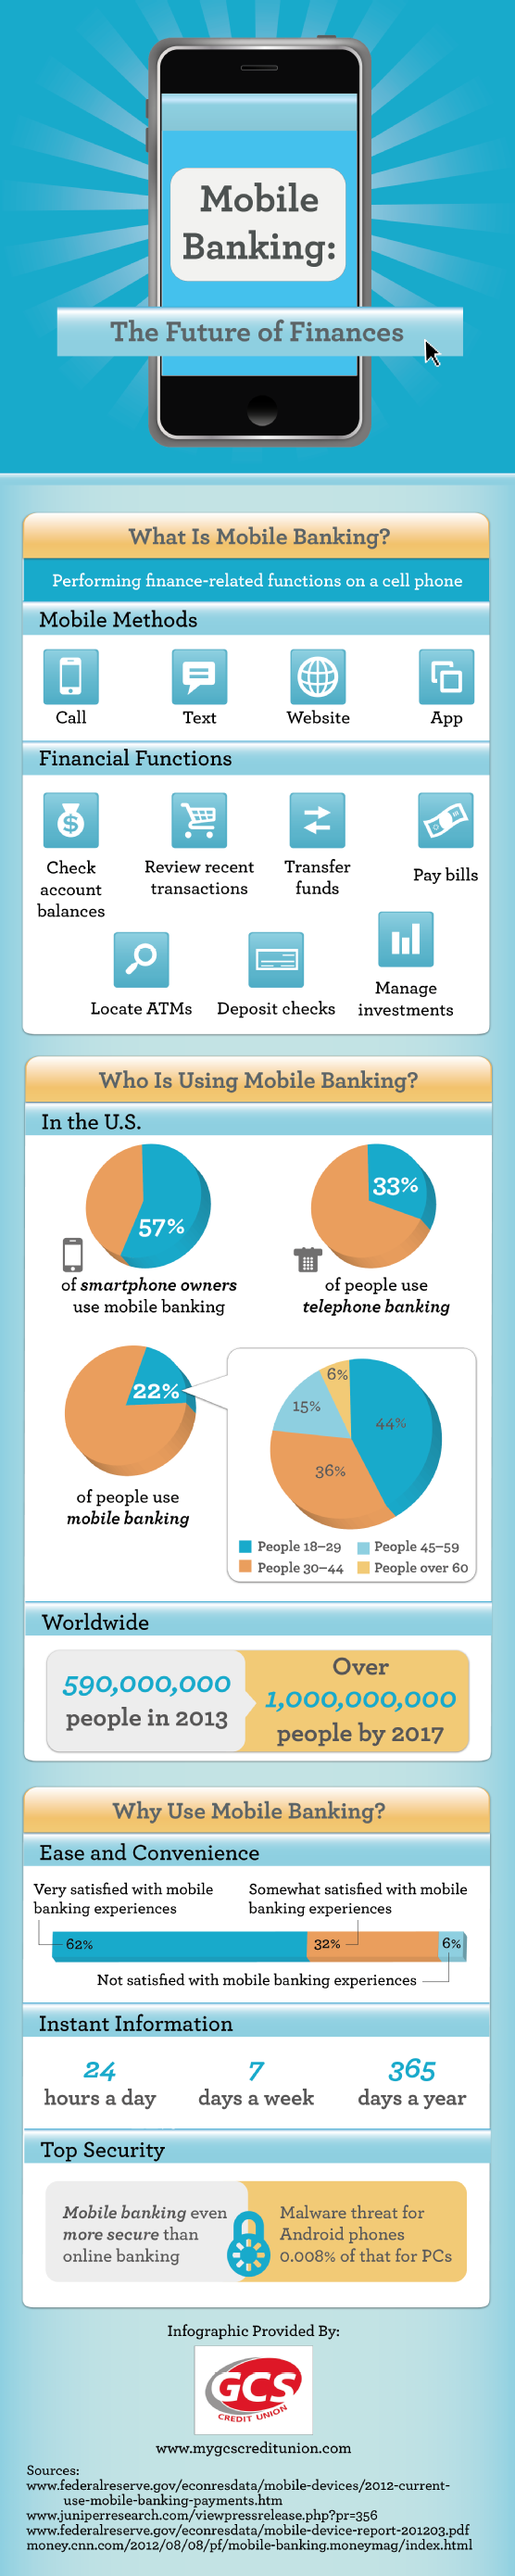 6. Mobile Banking The Future of Finances